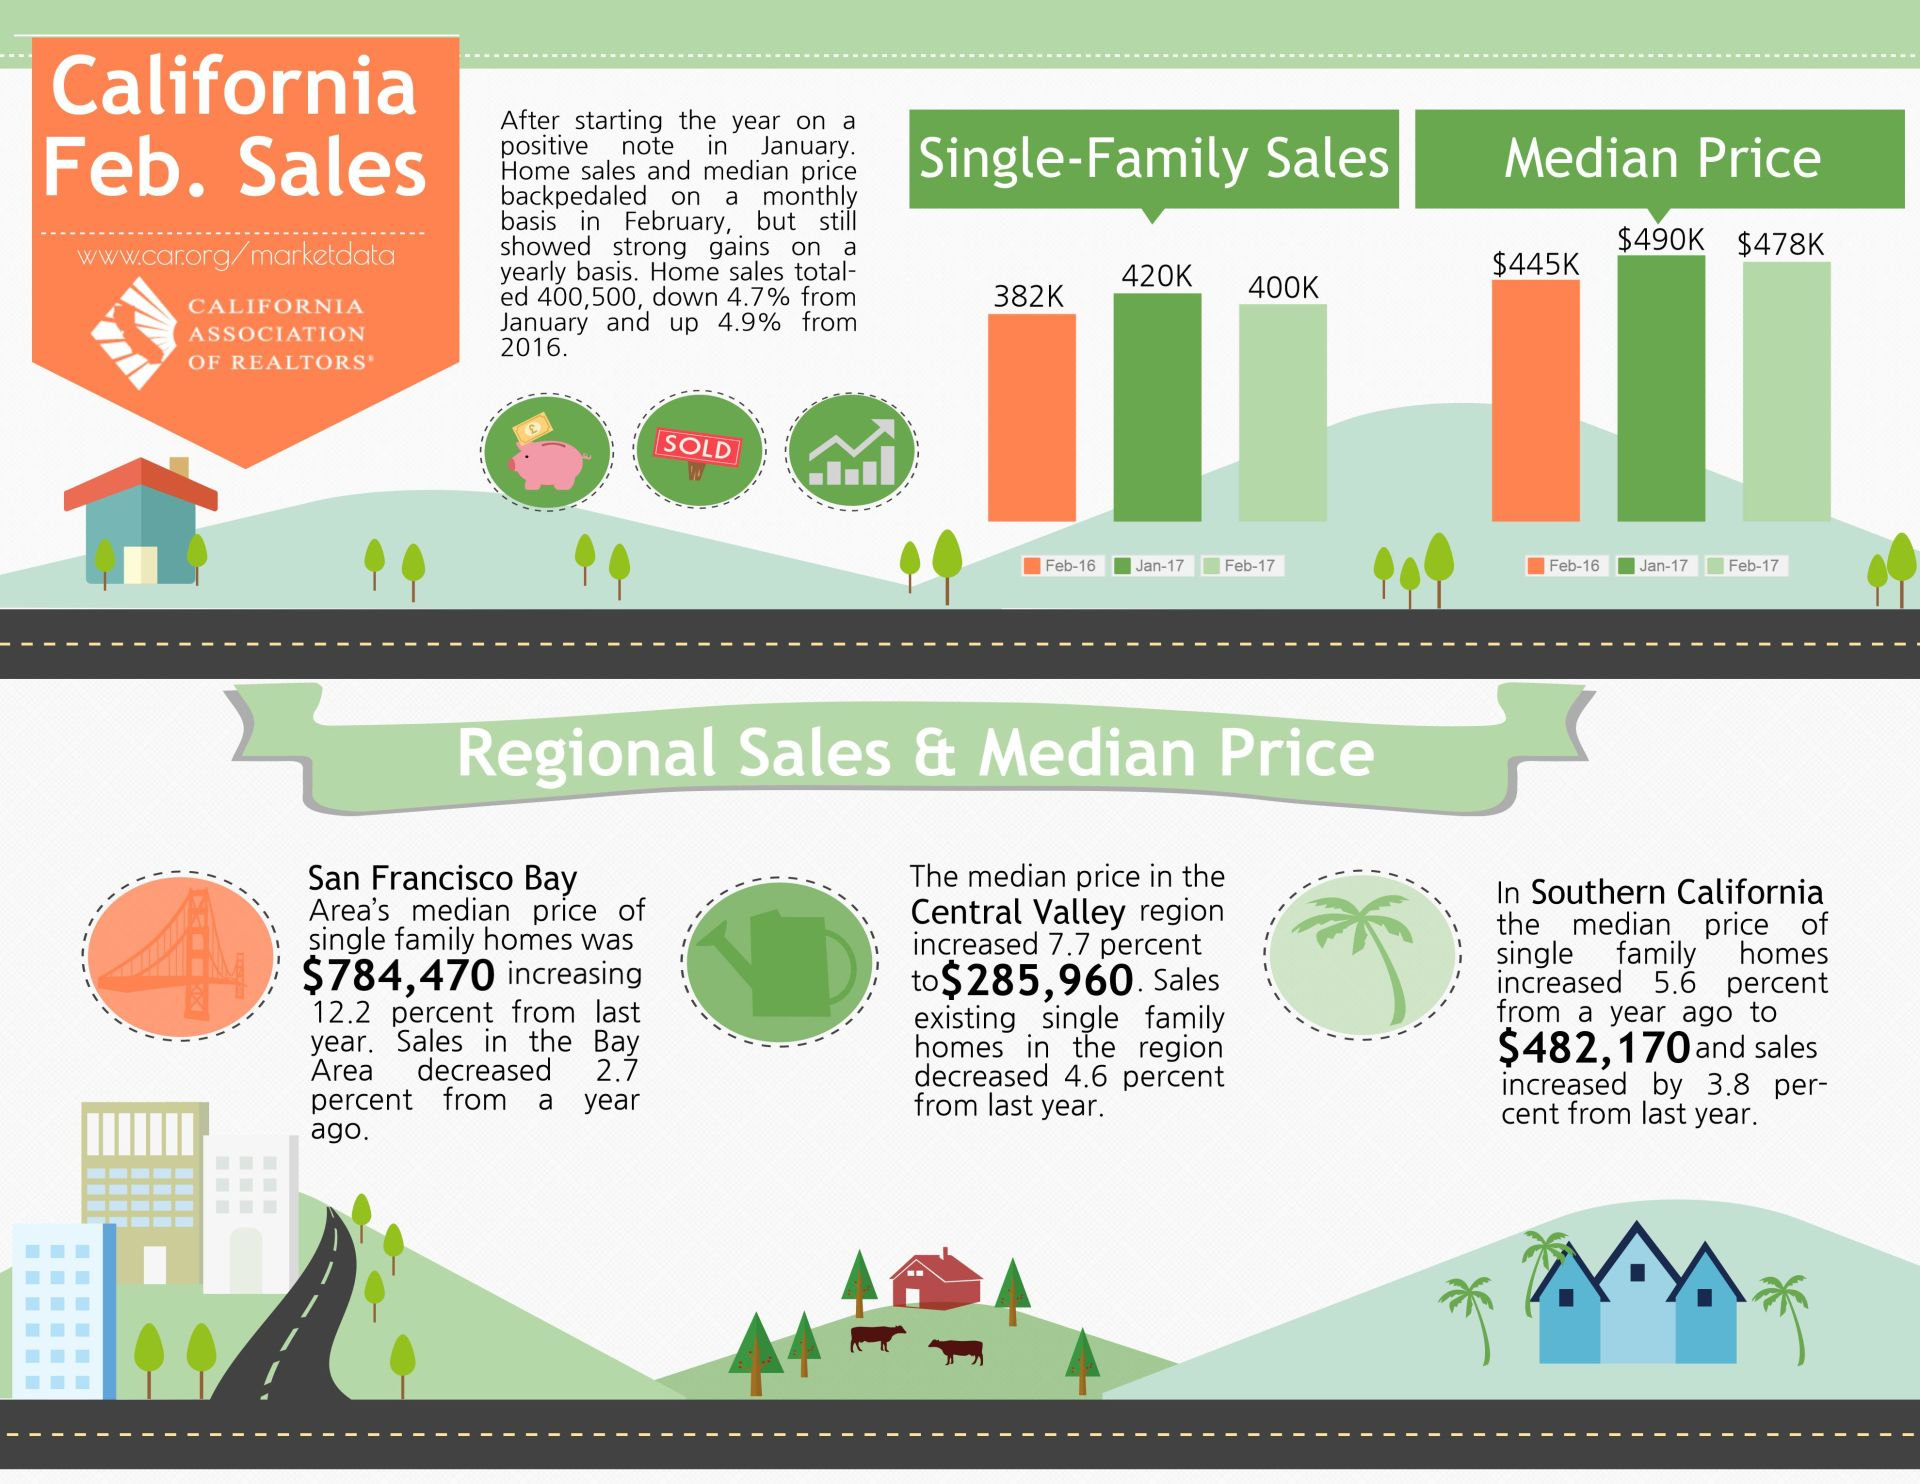 Median home price increases 5.6% in So Cal